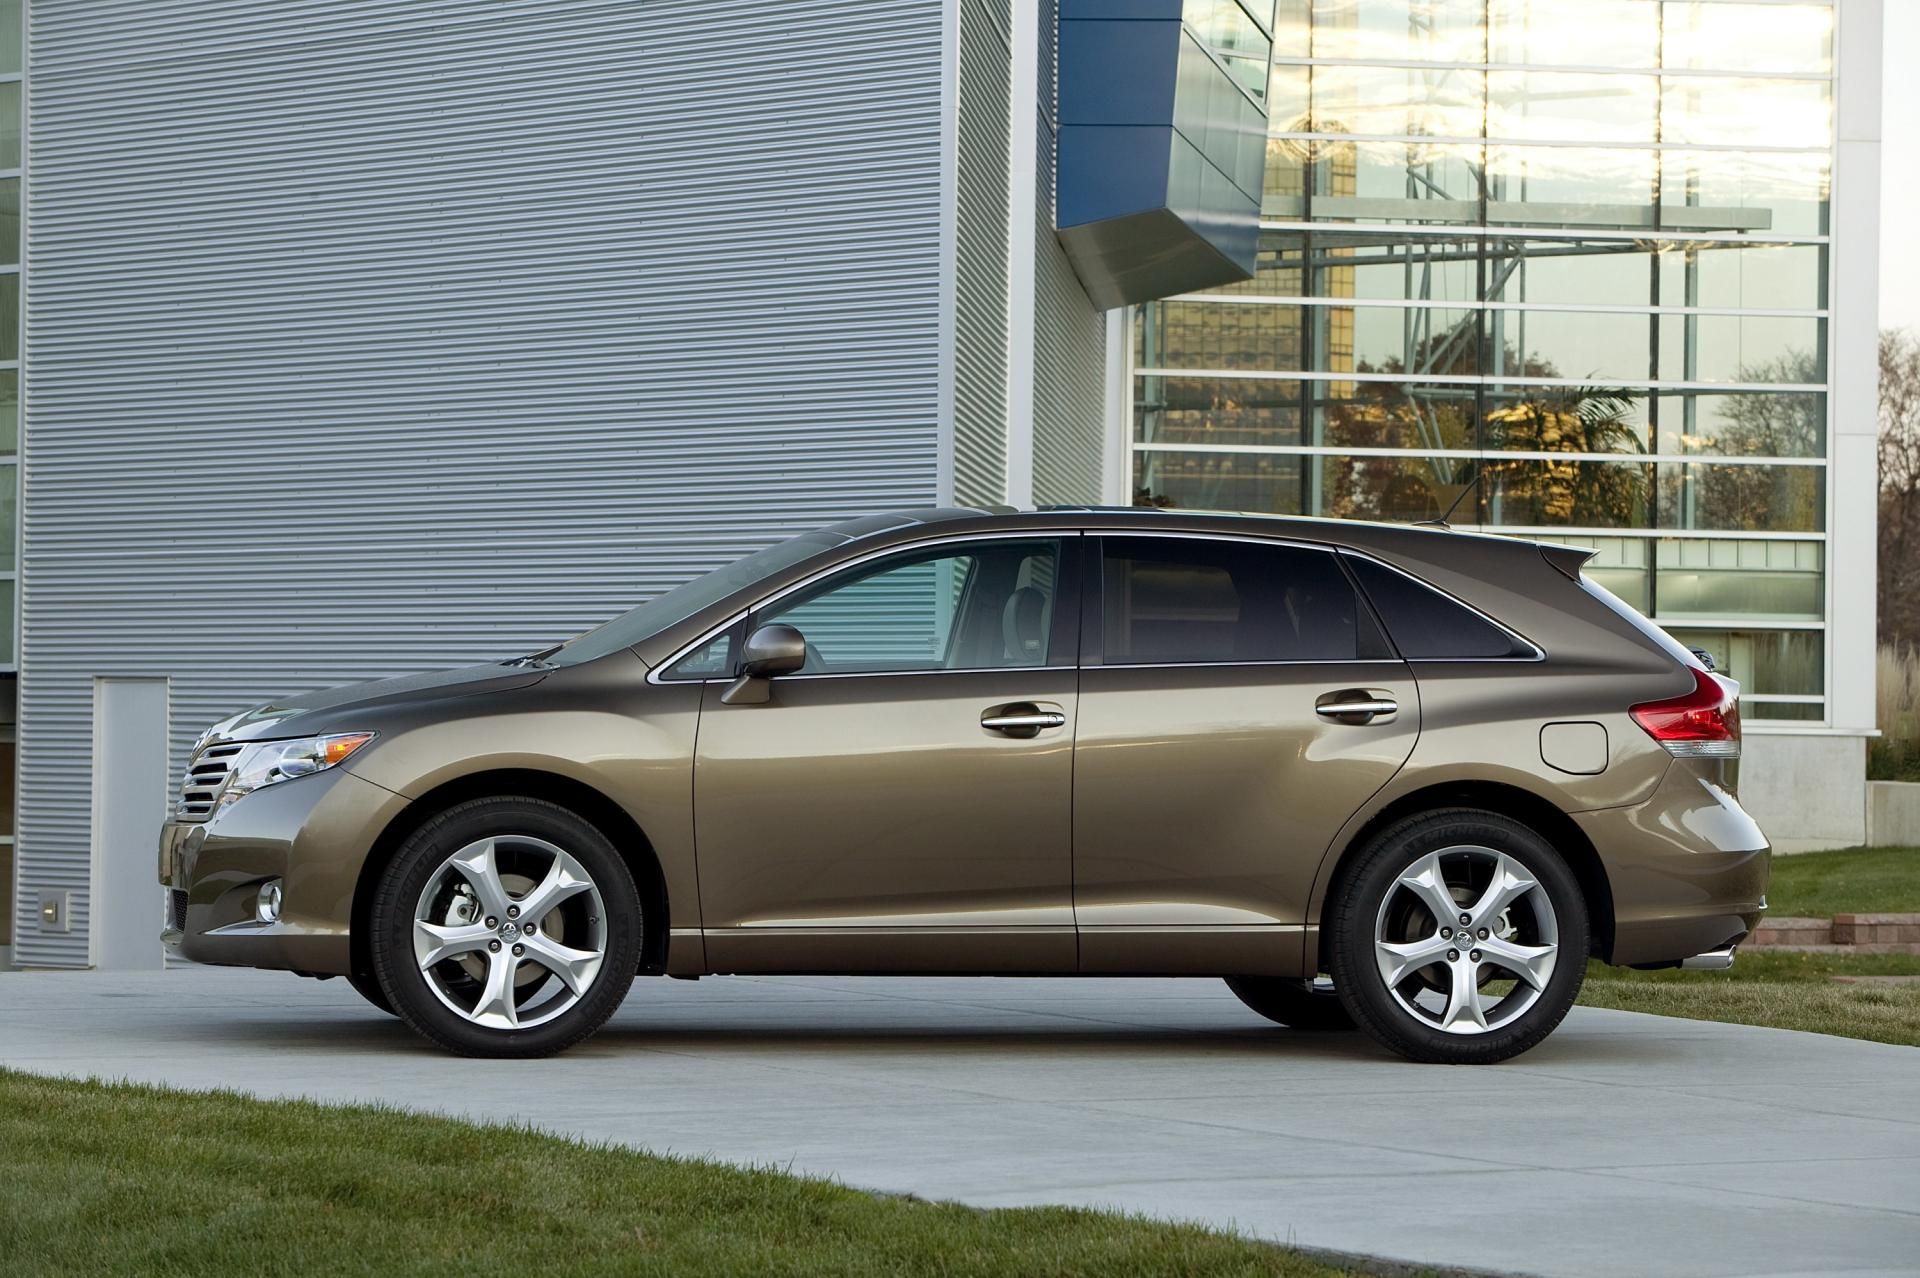 Toyota Venza I Restyling 2012 - now SUV 5 door #5